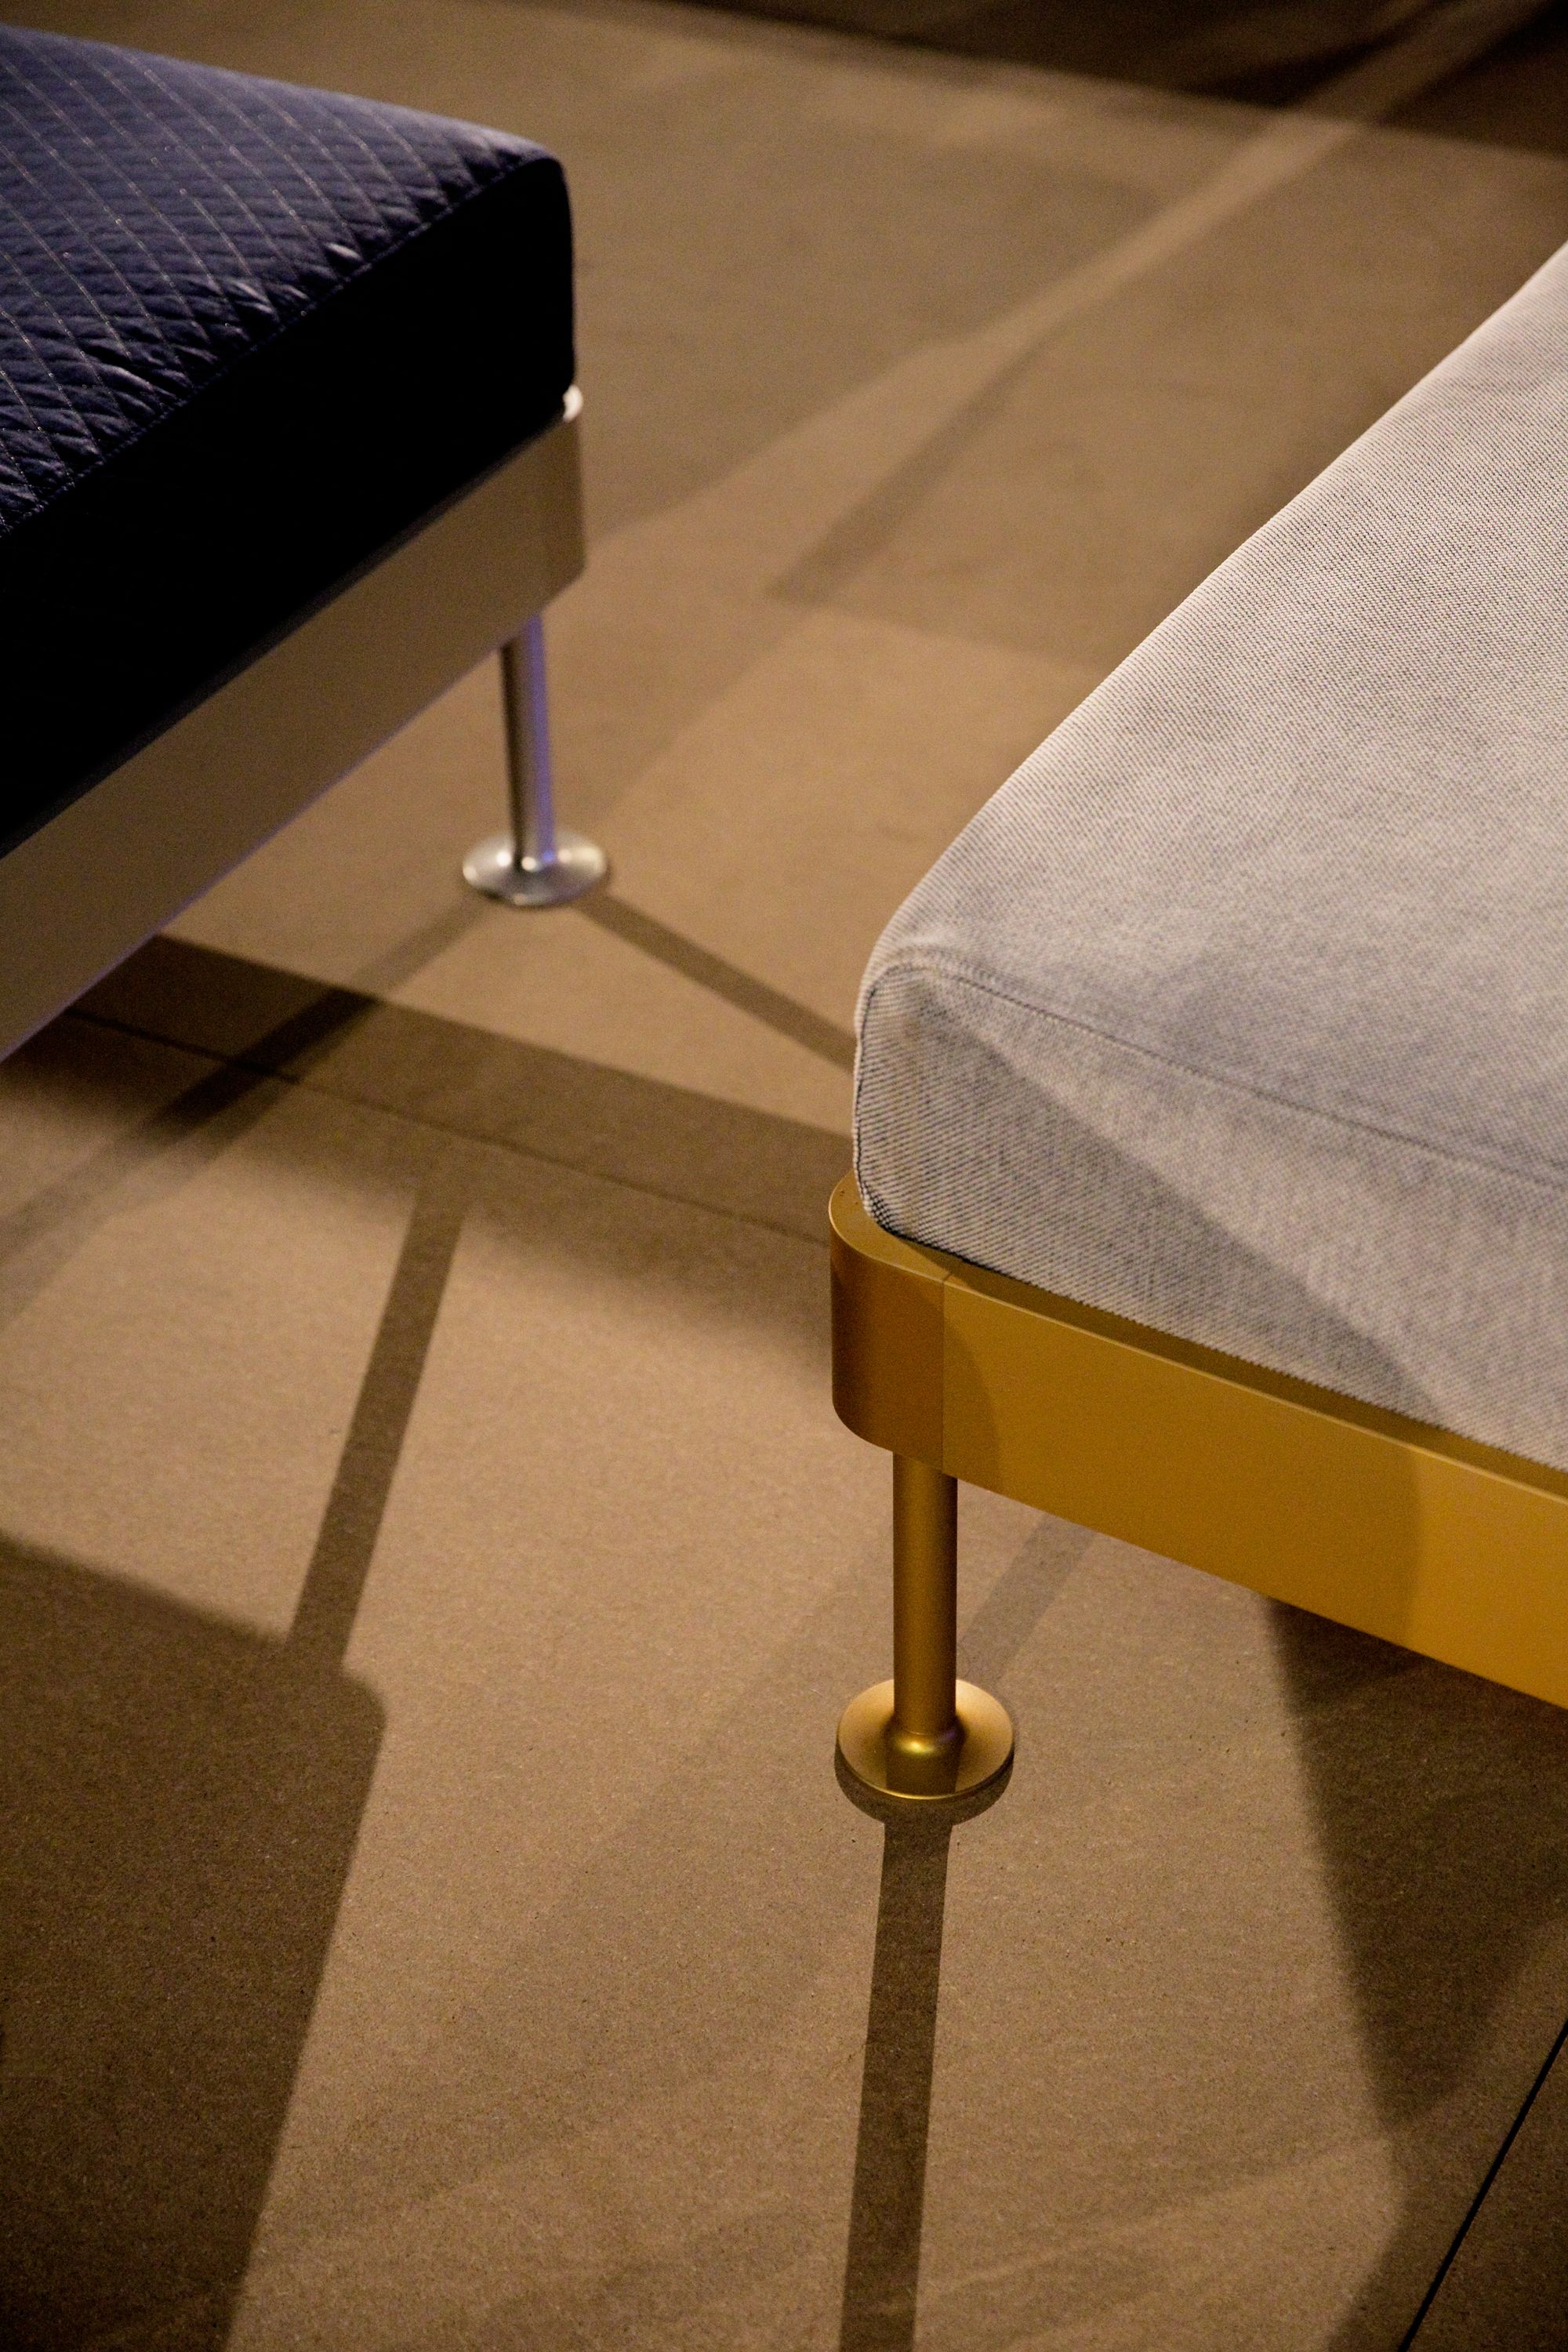 """Ikea and Tom Dixon Collaboration Yields the Delaktig an """"Open Source Furniture"""" System Core77 Business of Design Pinterest"""